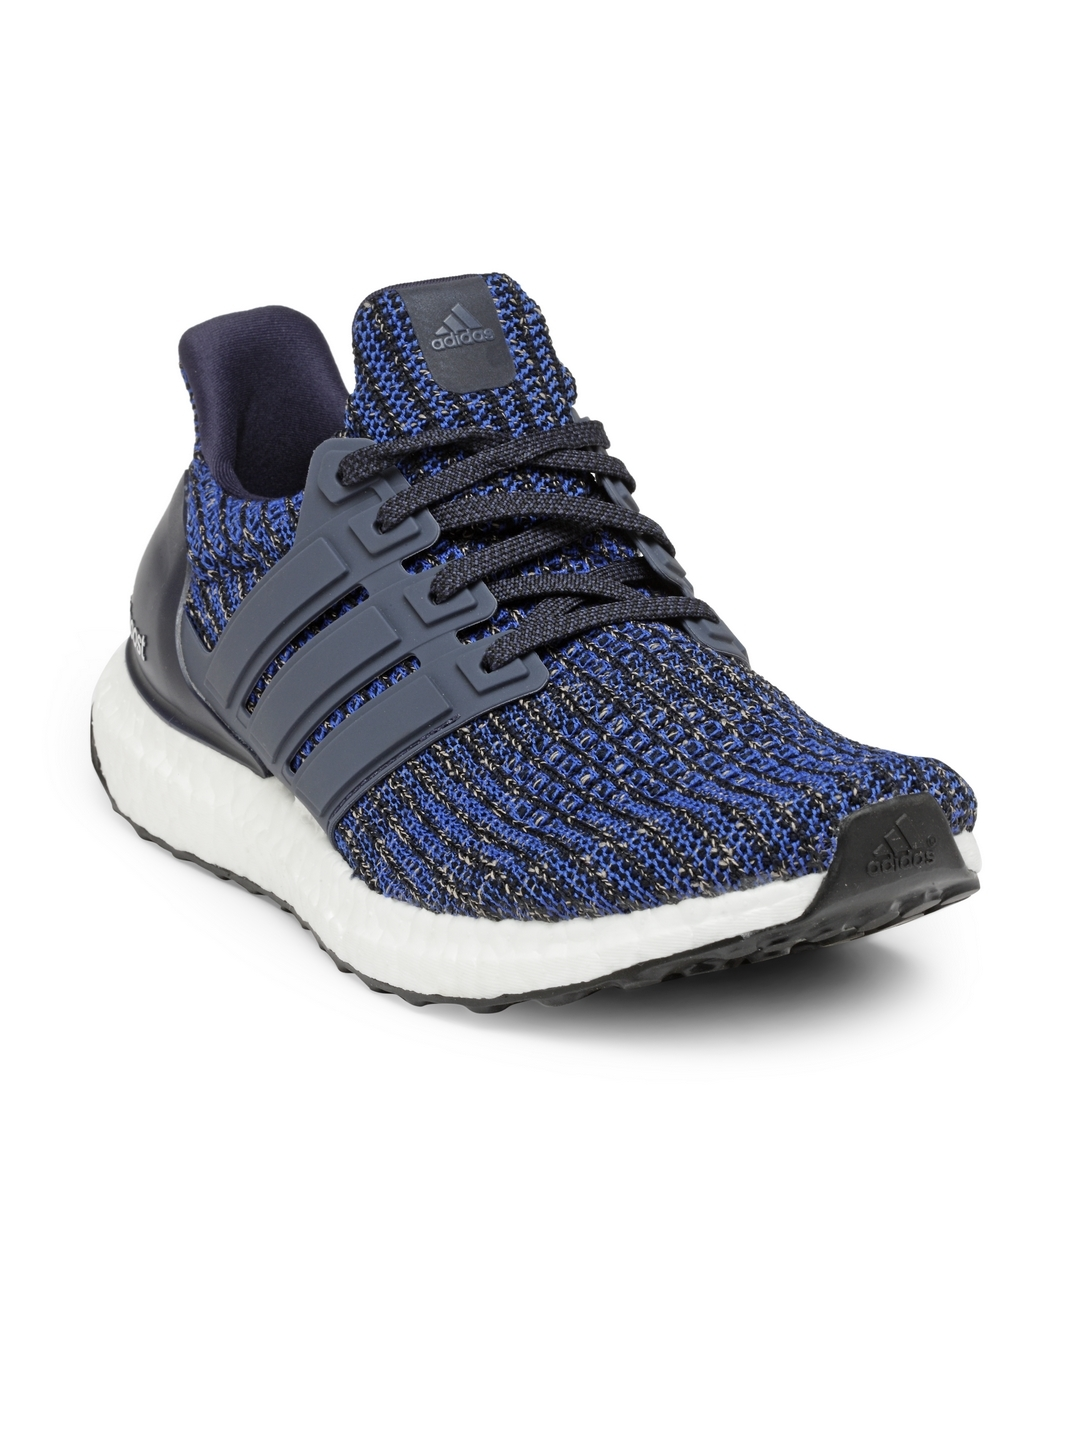 8411b8c51 Buy Adidas Men Blue Ultraboost Running Shoes - Sports Shoes for Men ...